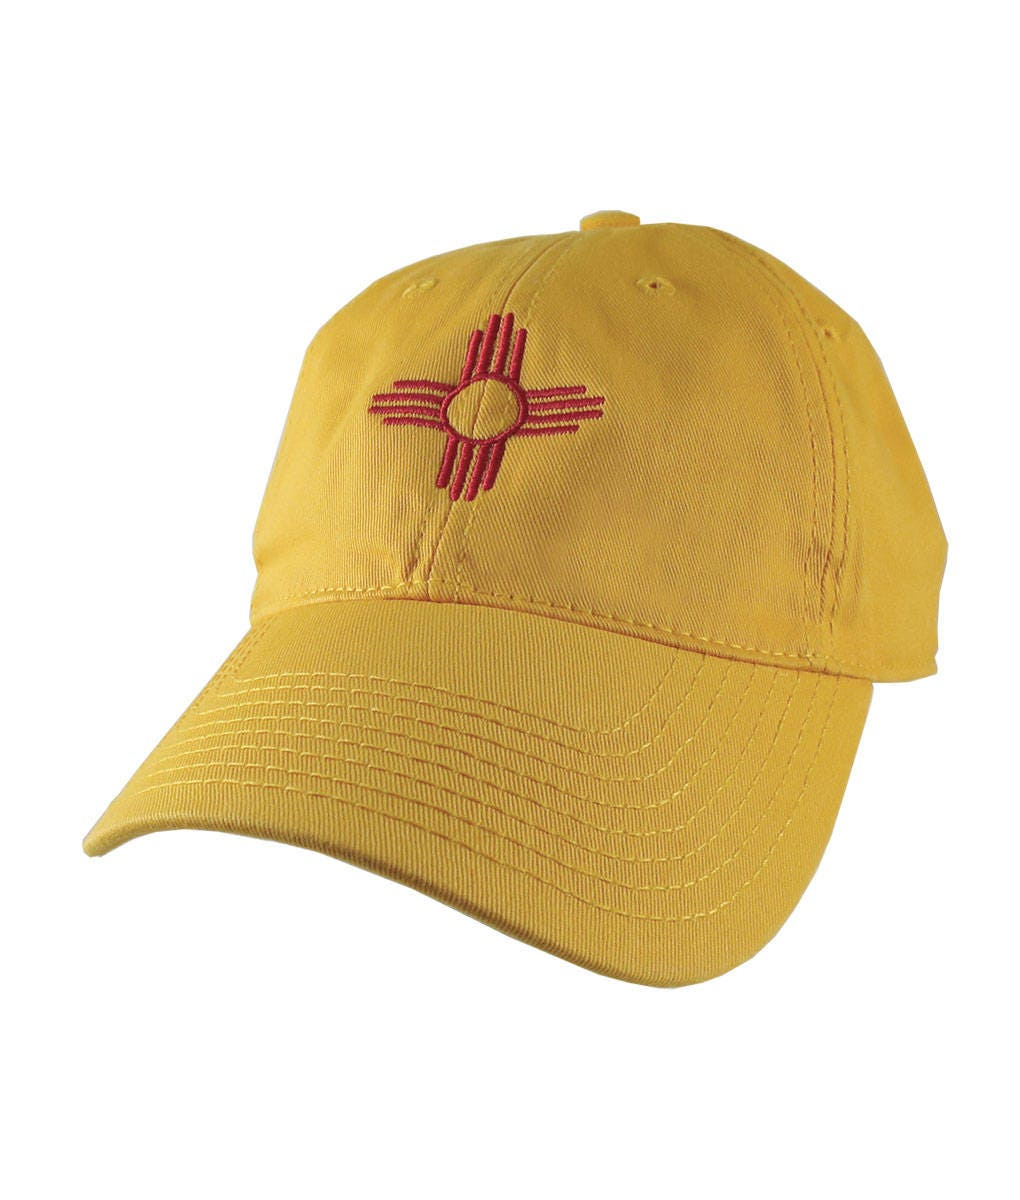 New mexico state flag symbol red embroidery design on an new mexico state flag symbol red embroidery design on an adjustable sun yellow unstructured classic baseball cap dad hat buycottarizona